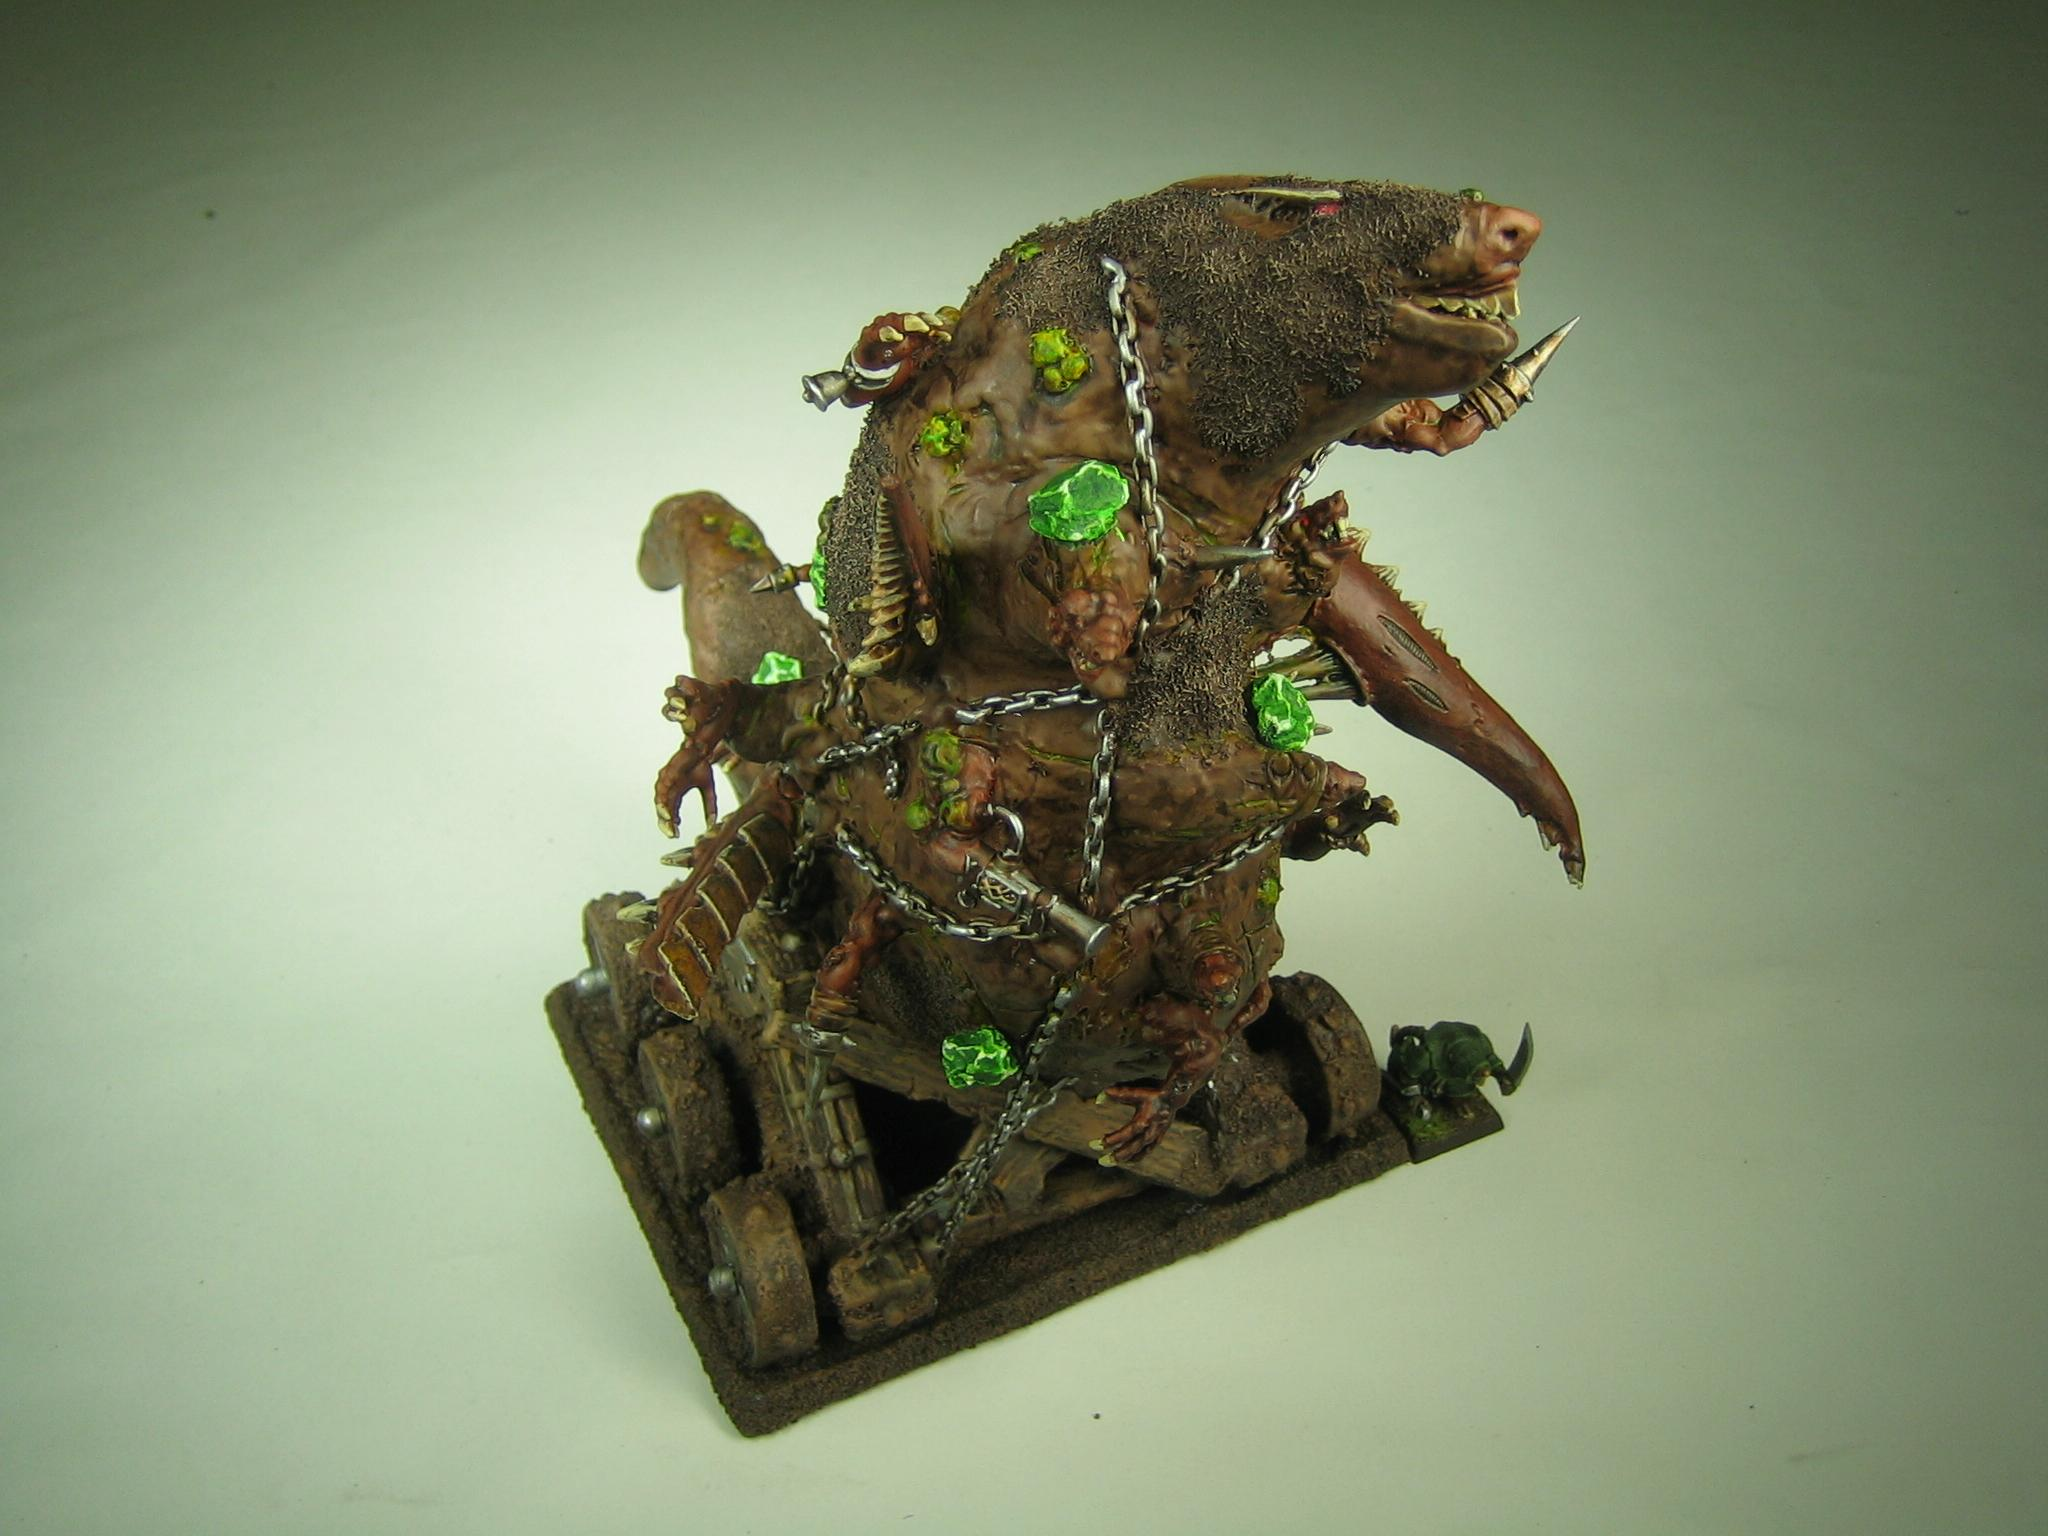 Abomination, Chaos Spawn, Skaven